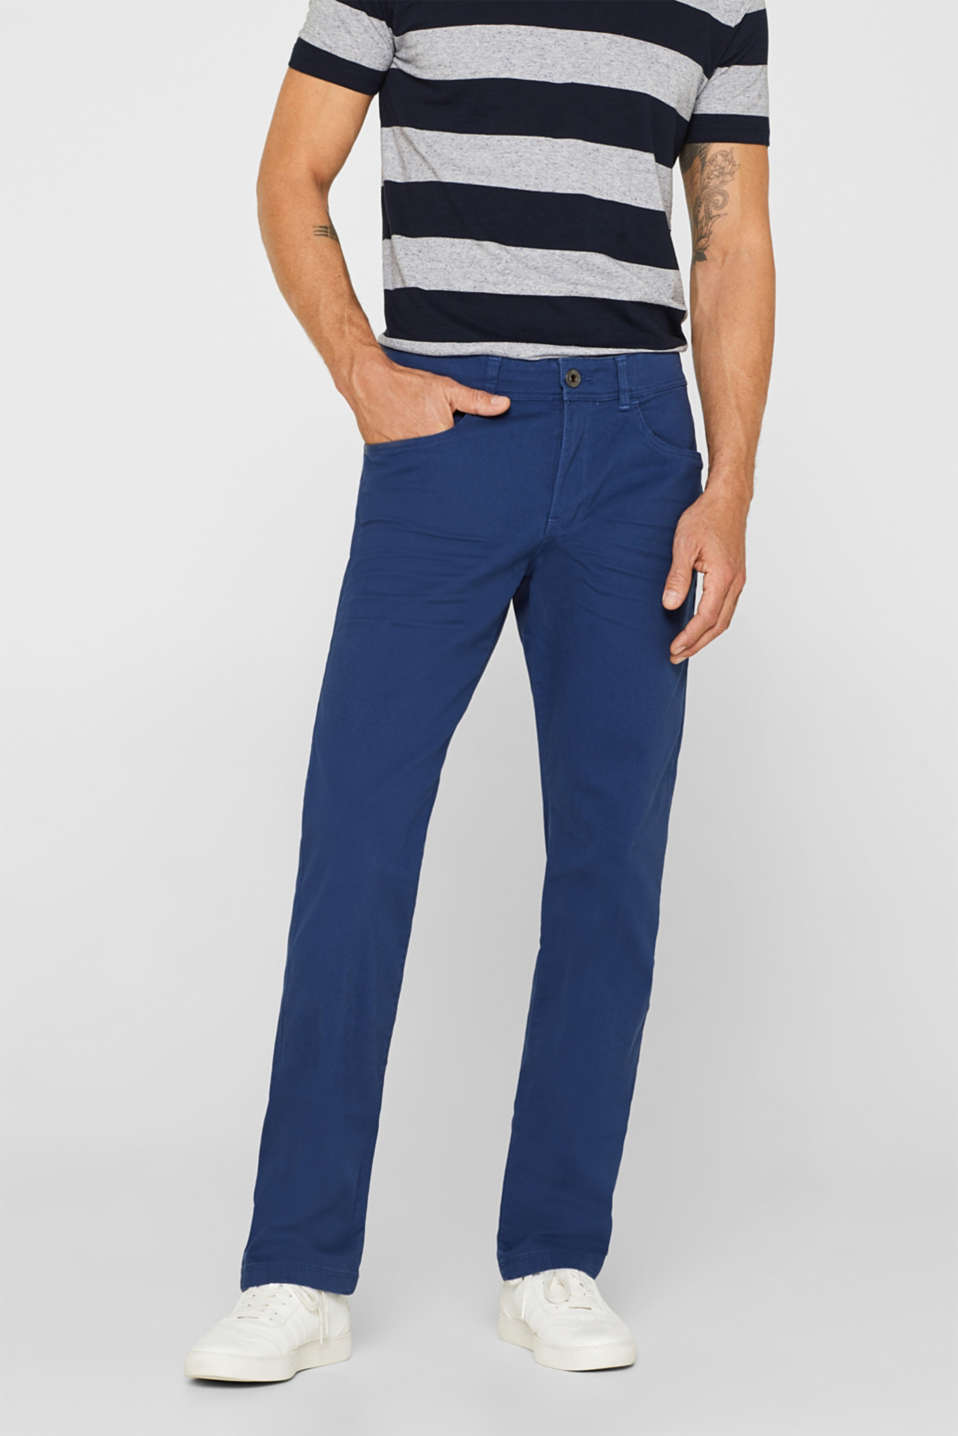 Esprit - Stretch trousers with a simple garment wash